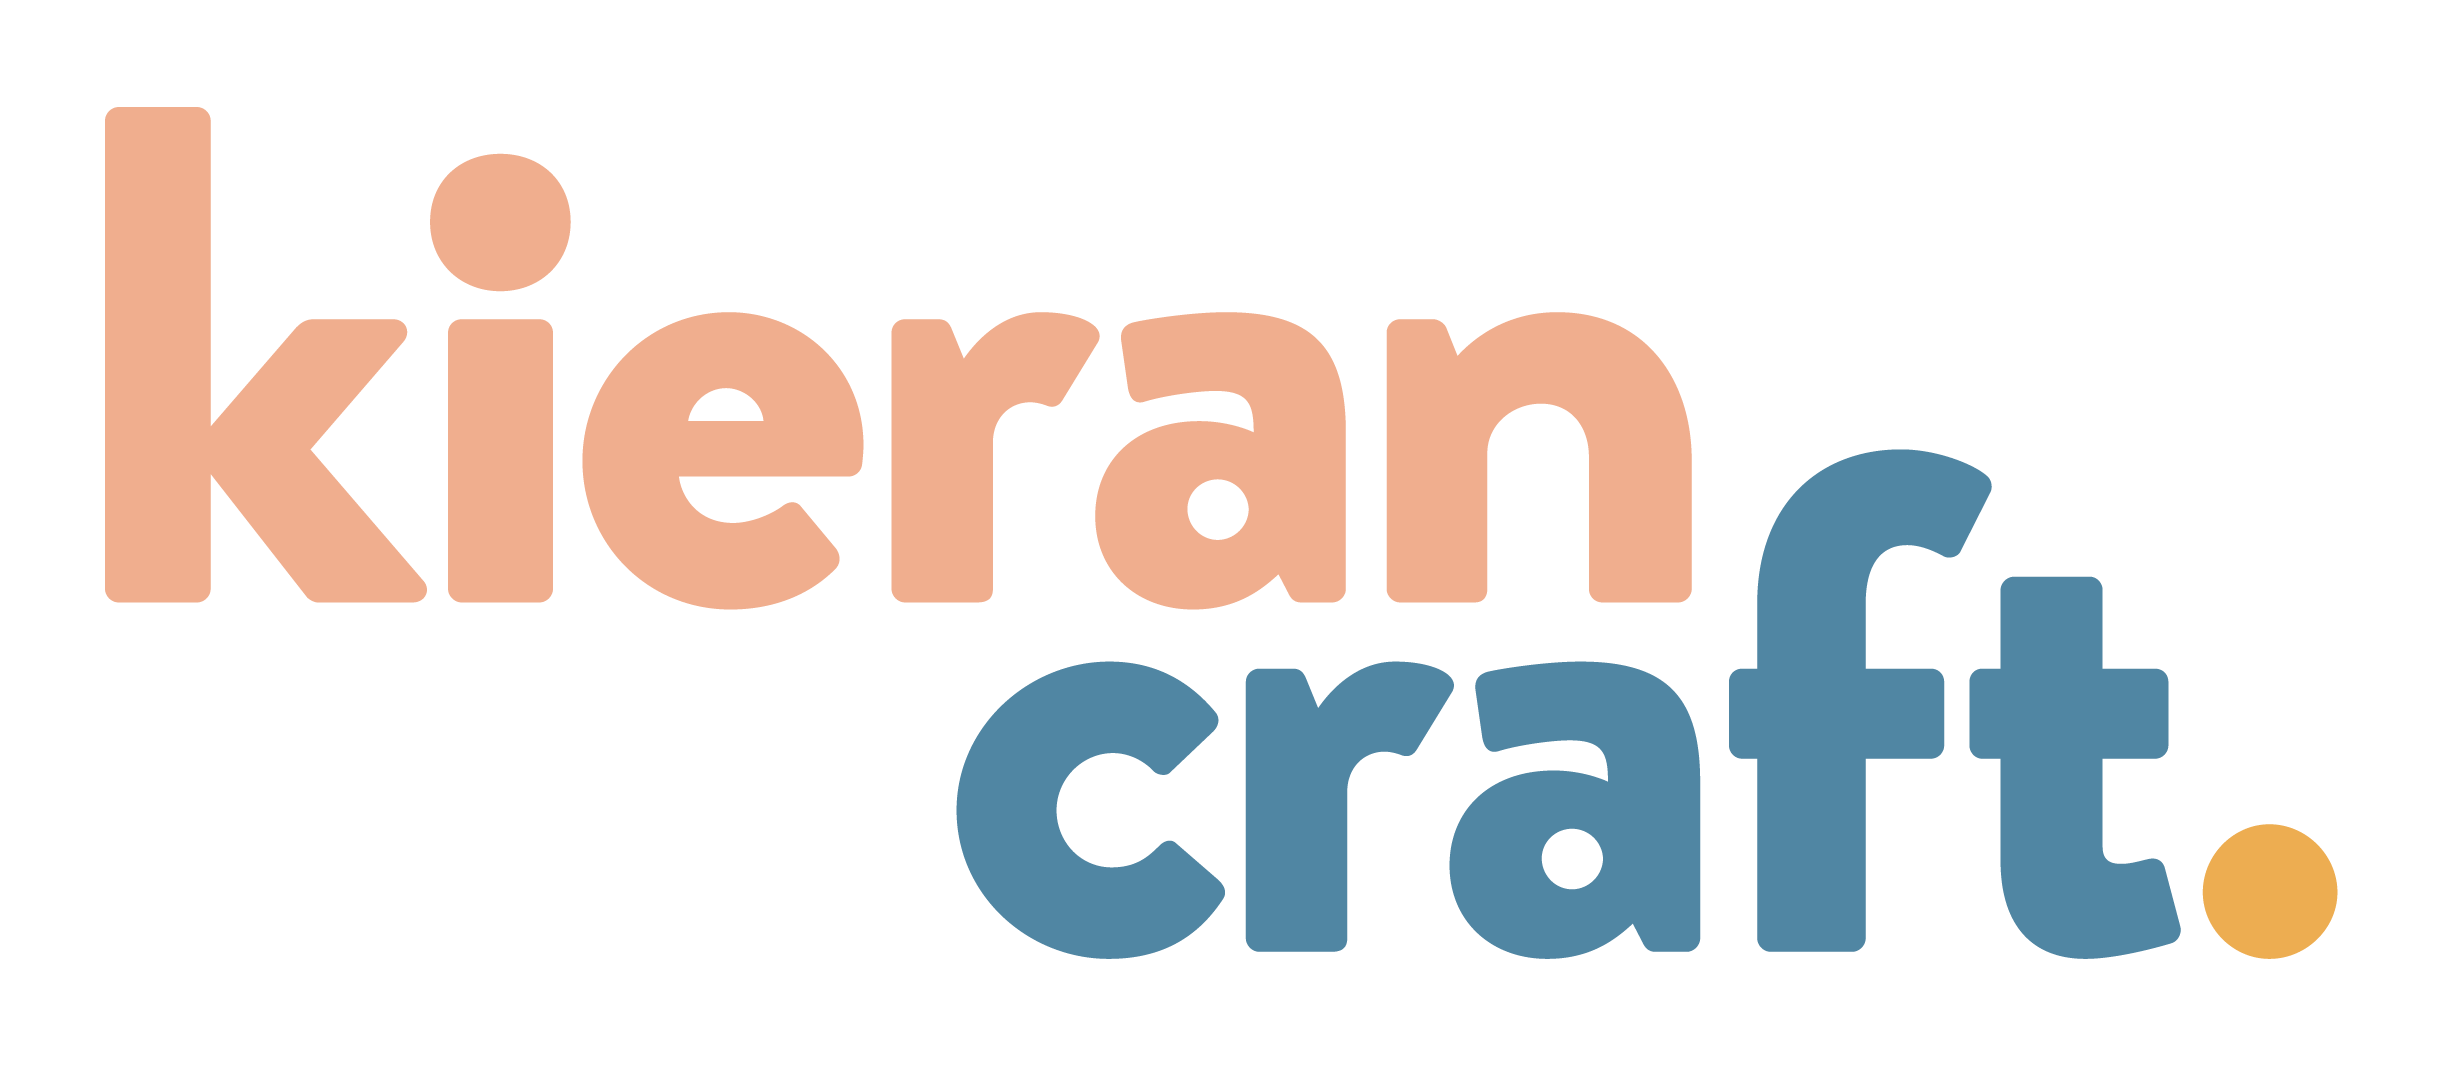 Logo featuring the name Kieran Craft in salmon, blue, and mustard.